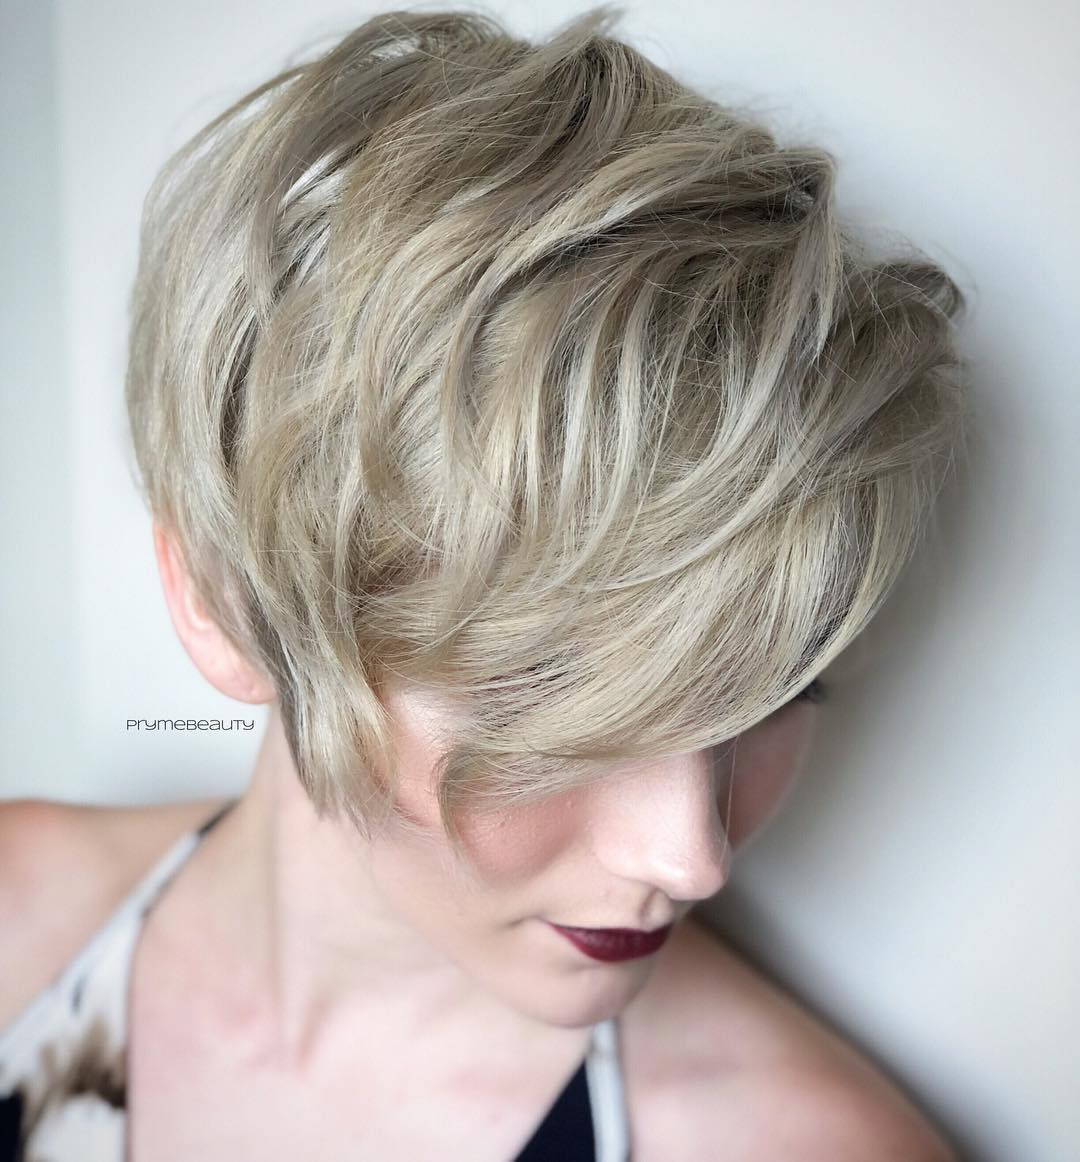 Best ideas about Layered Bob Haircuts 2019 . Save or Pin Top 10 Trendy Low Maintenance Short Layered Hairstyles 2019 Now.